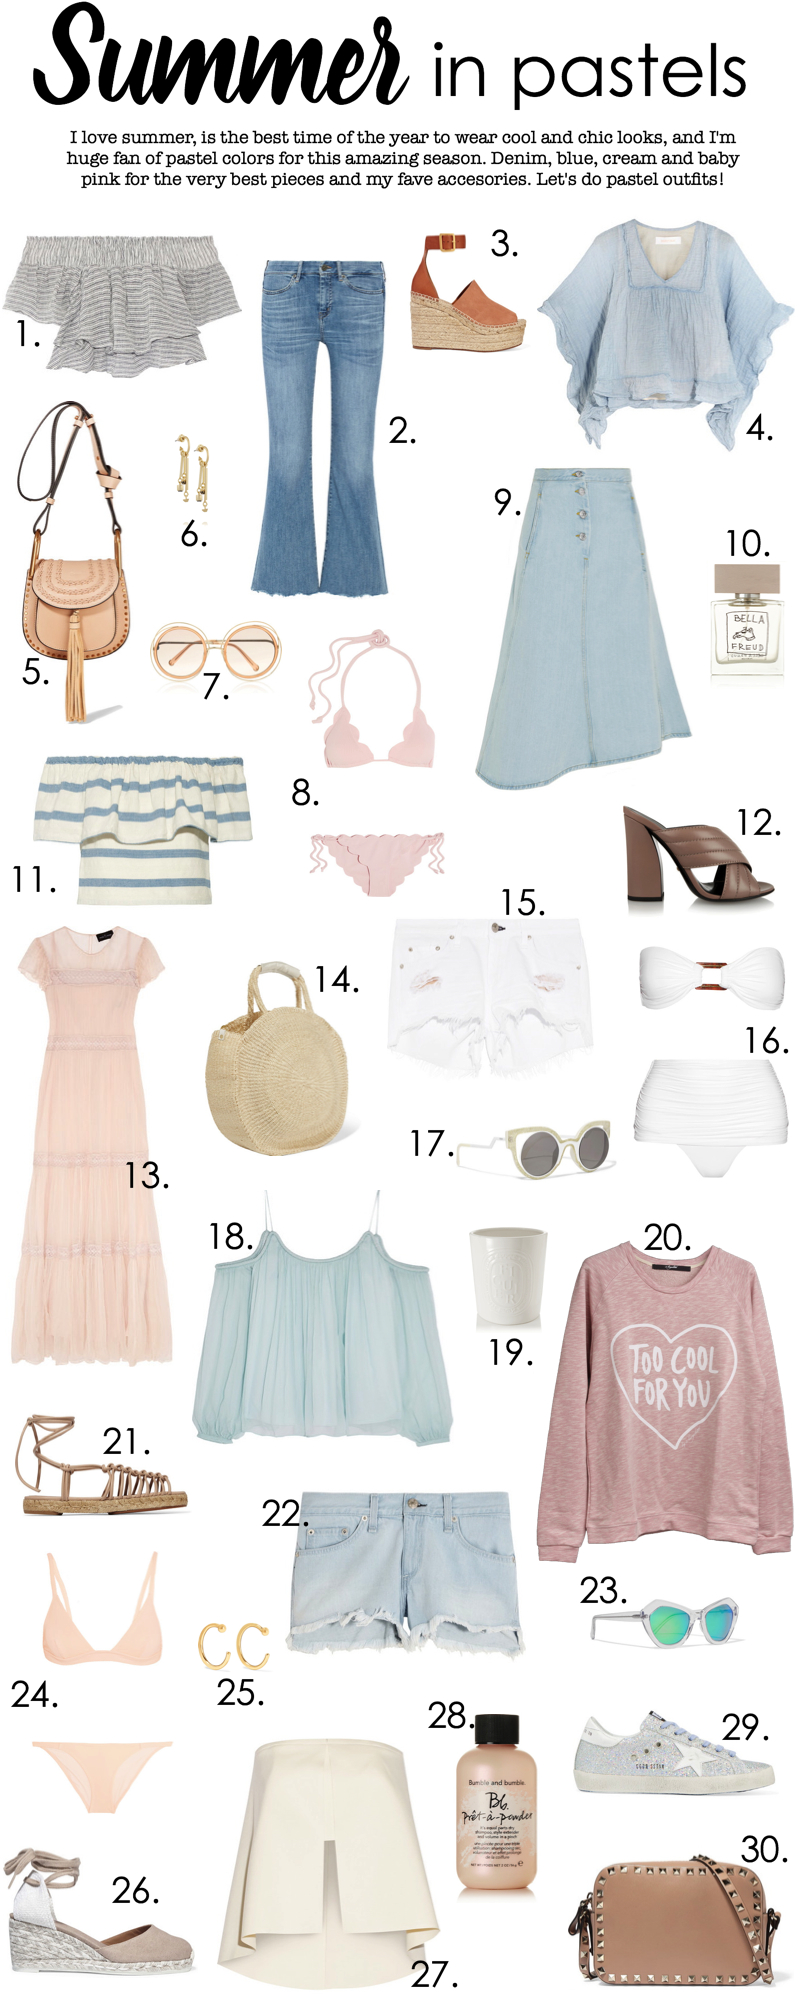 MY FAVE PASTELS FOR SUMMER-91903-bartabacmode